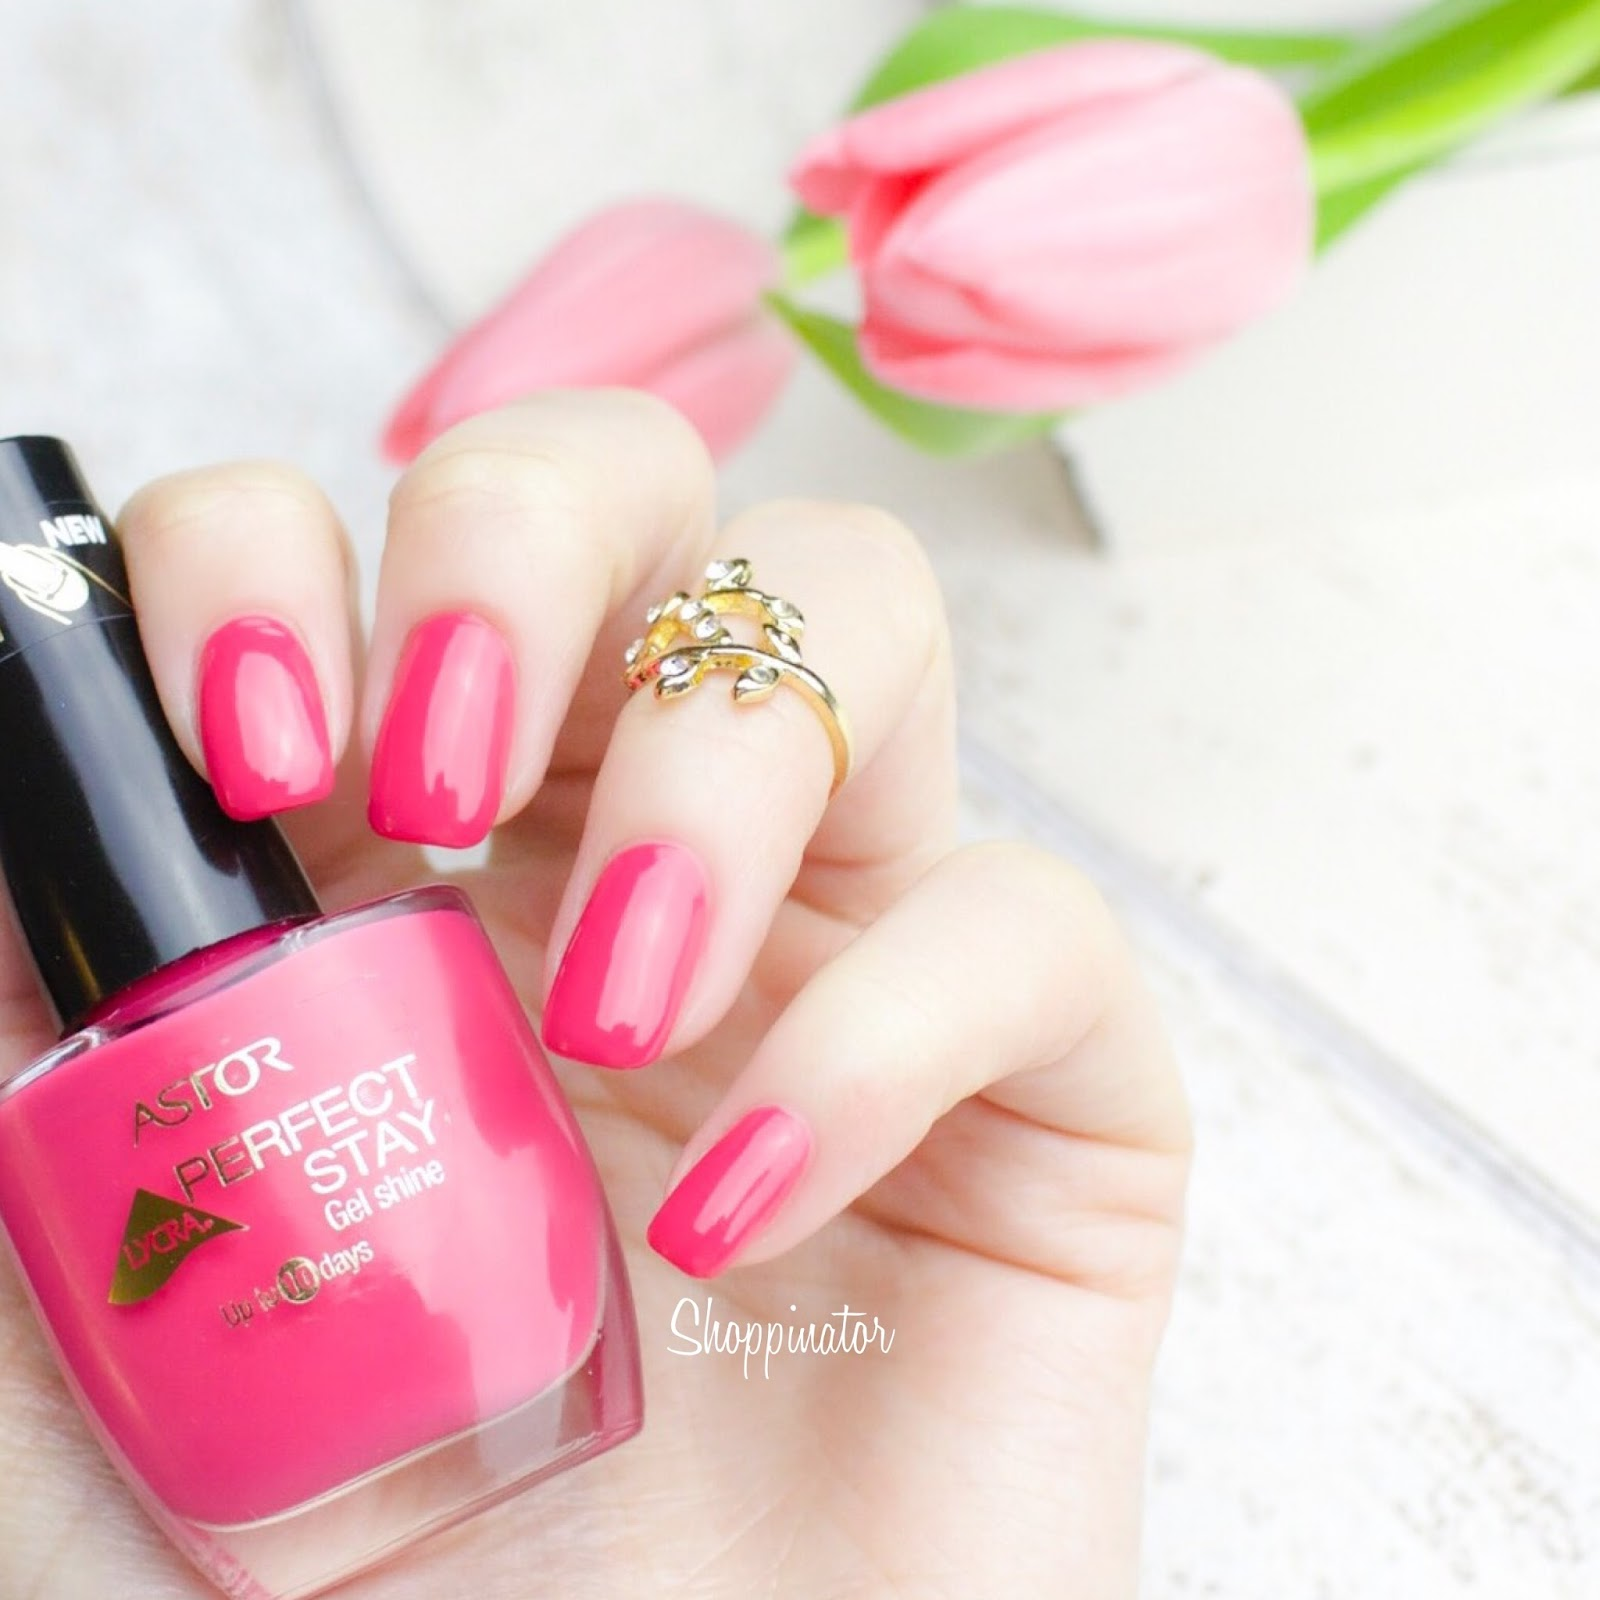 Shoppinator-Astor-Pink-with-envy-Pink-Perfect-Stay-Gel-Shine-Nagellack-Notd-Nails-Frühlingslack-Frühling-Drogerie-Miss-Sophies-Flamingo-Nail-Sticker-Nailsticker-Flamingos-Nailwraps